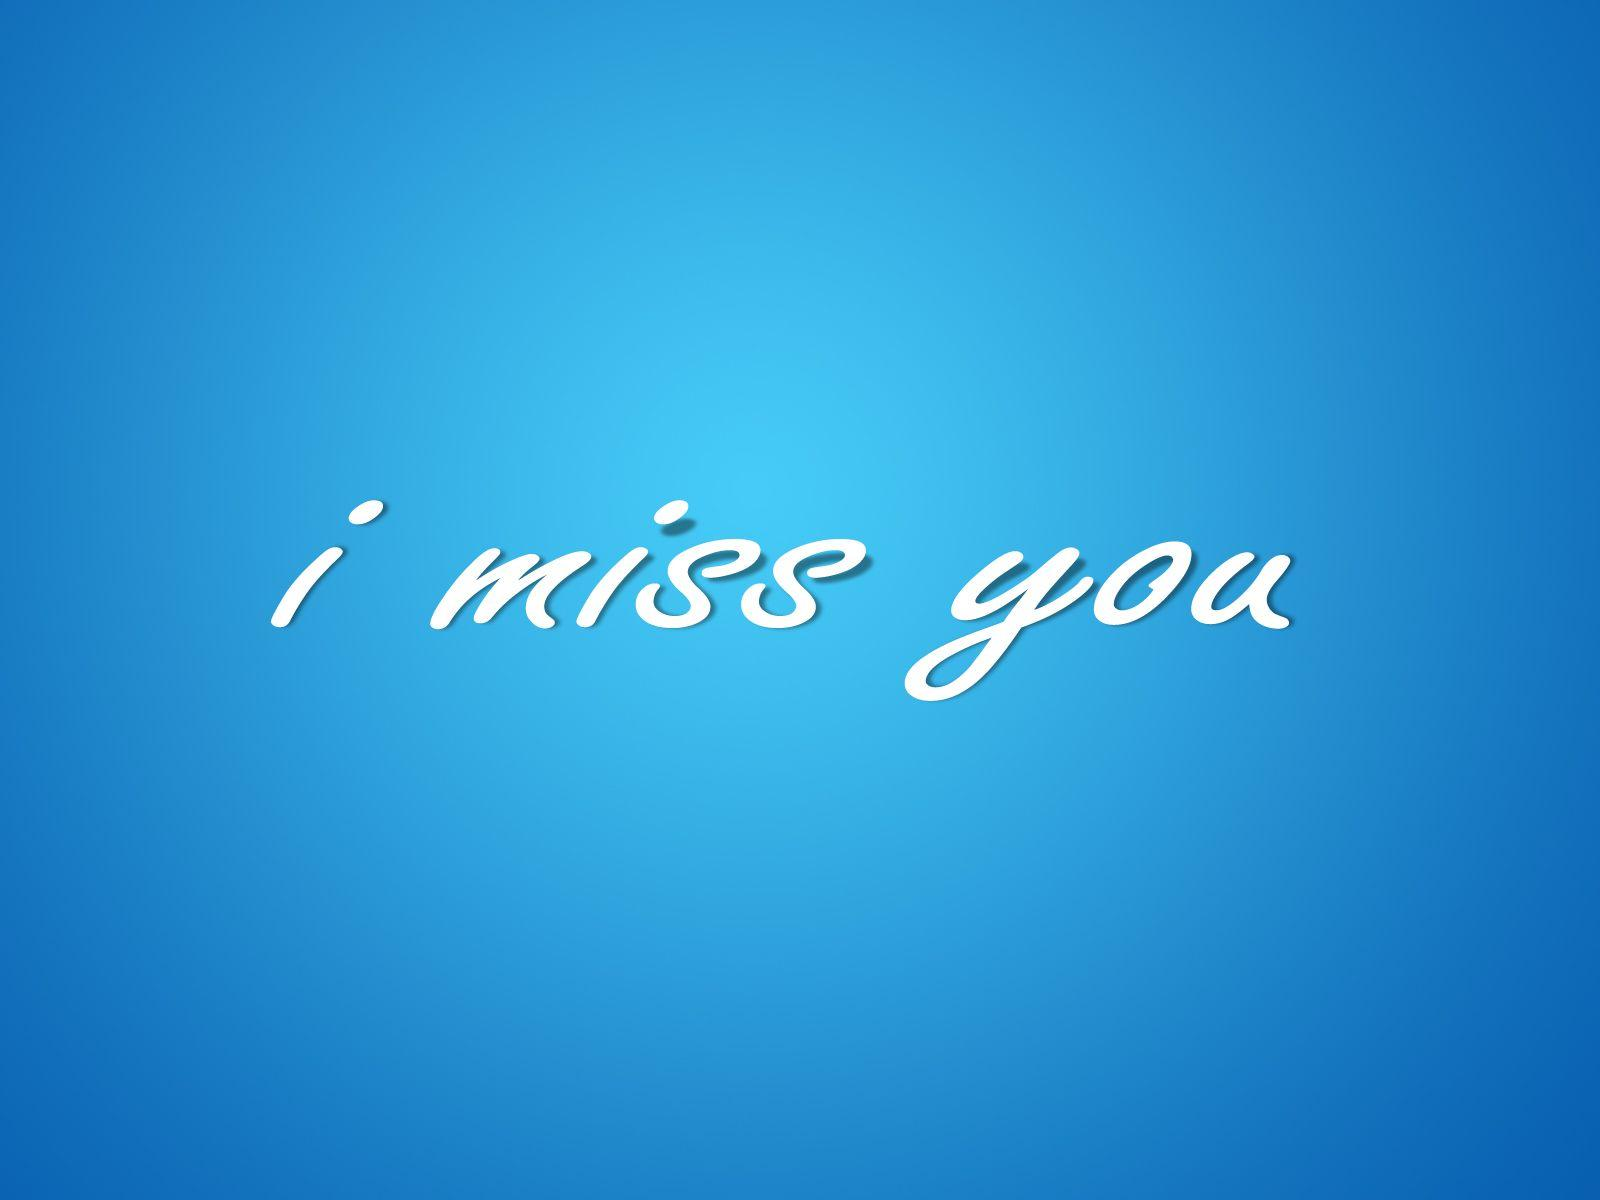 Wallpaper download i miss you - I Miss U 2 Wallpaper Awesome Wallpapers